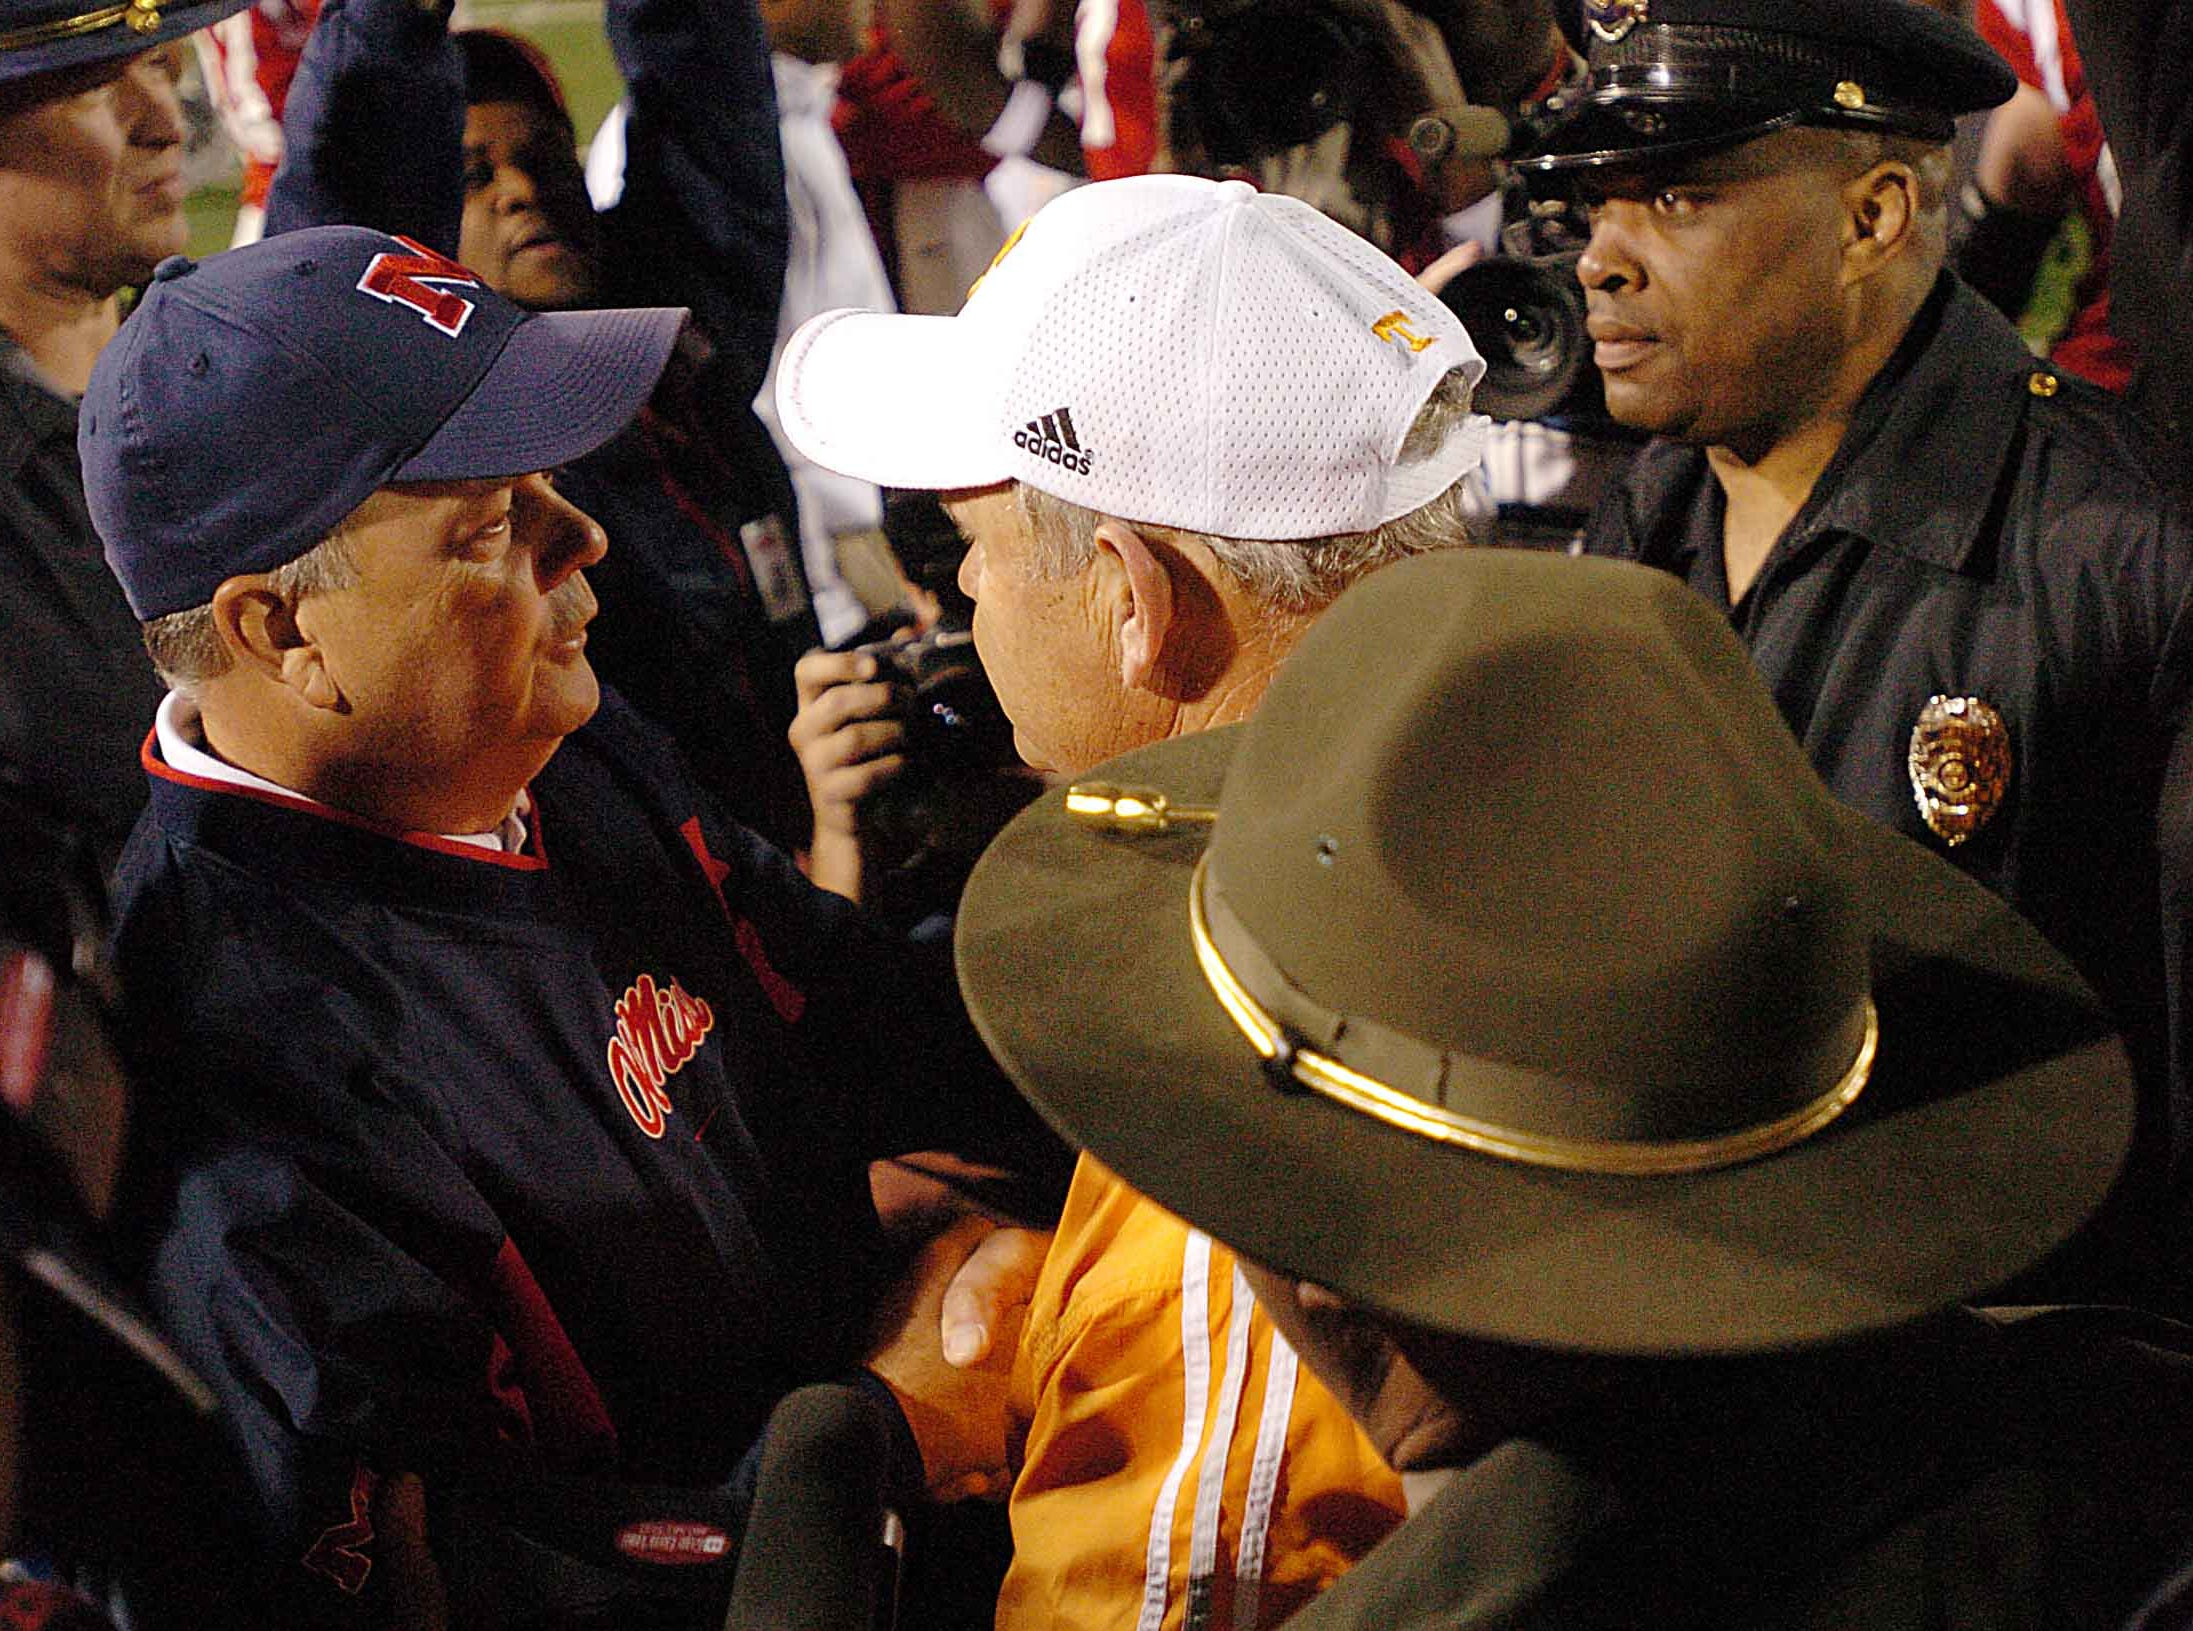 Ole Miss head coach David Cutcliffe, left, and Tennessee head coach Phillip Fulmer meet on the field after the Vols 21-17 win Saturday in Oxford.      10/16/2004